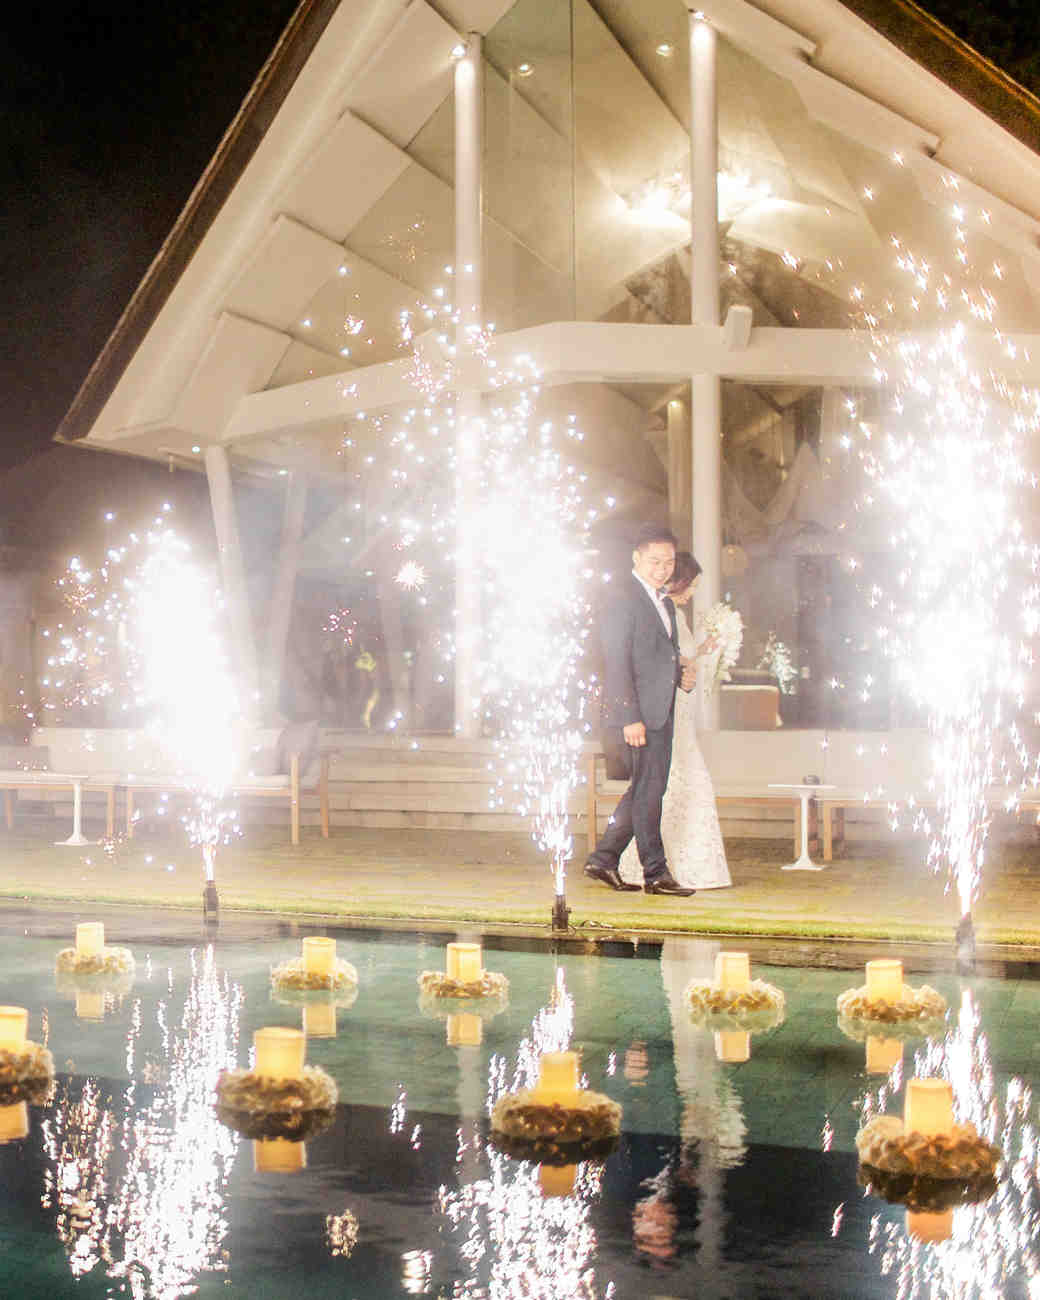 wedding fireworks sparkler dazzling reflection